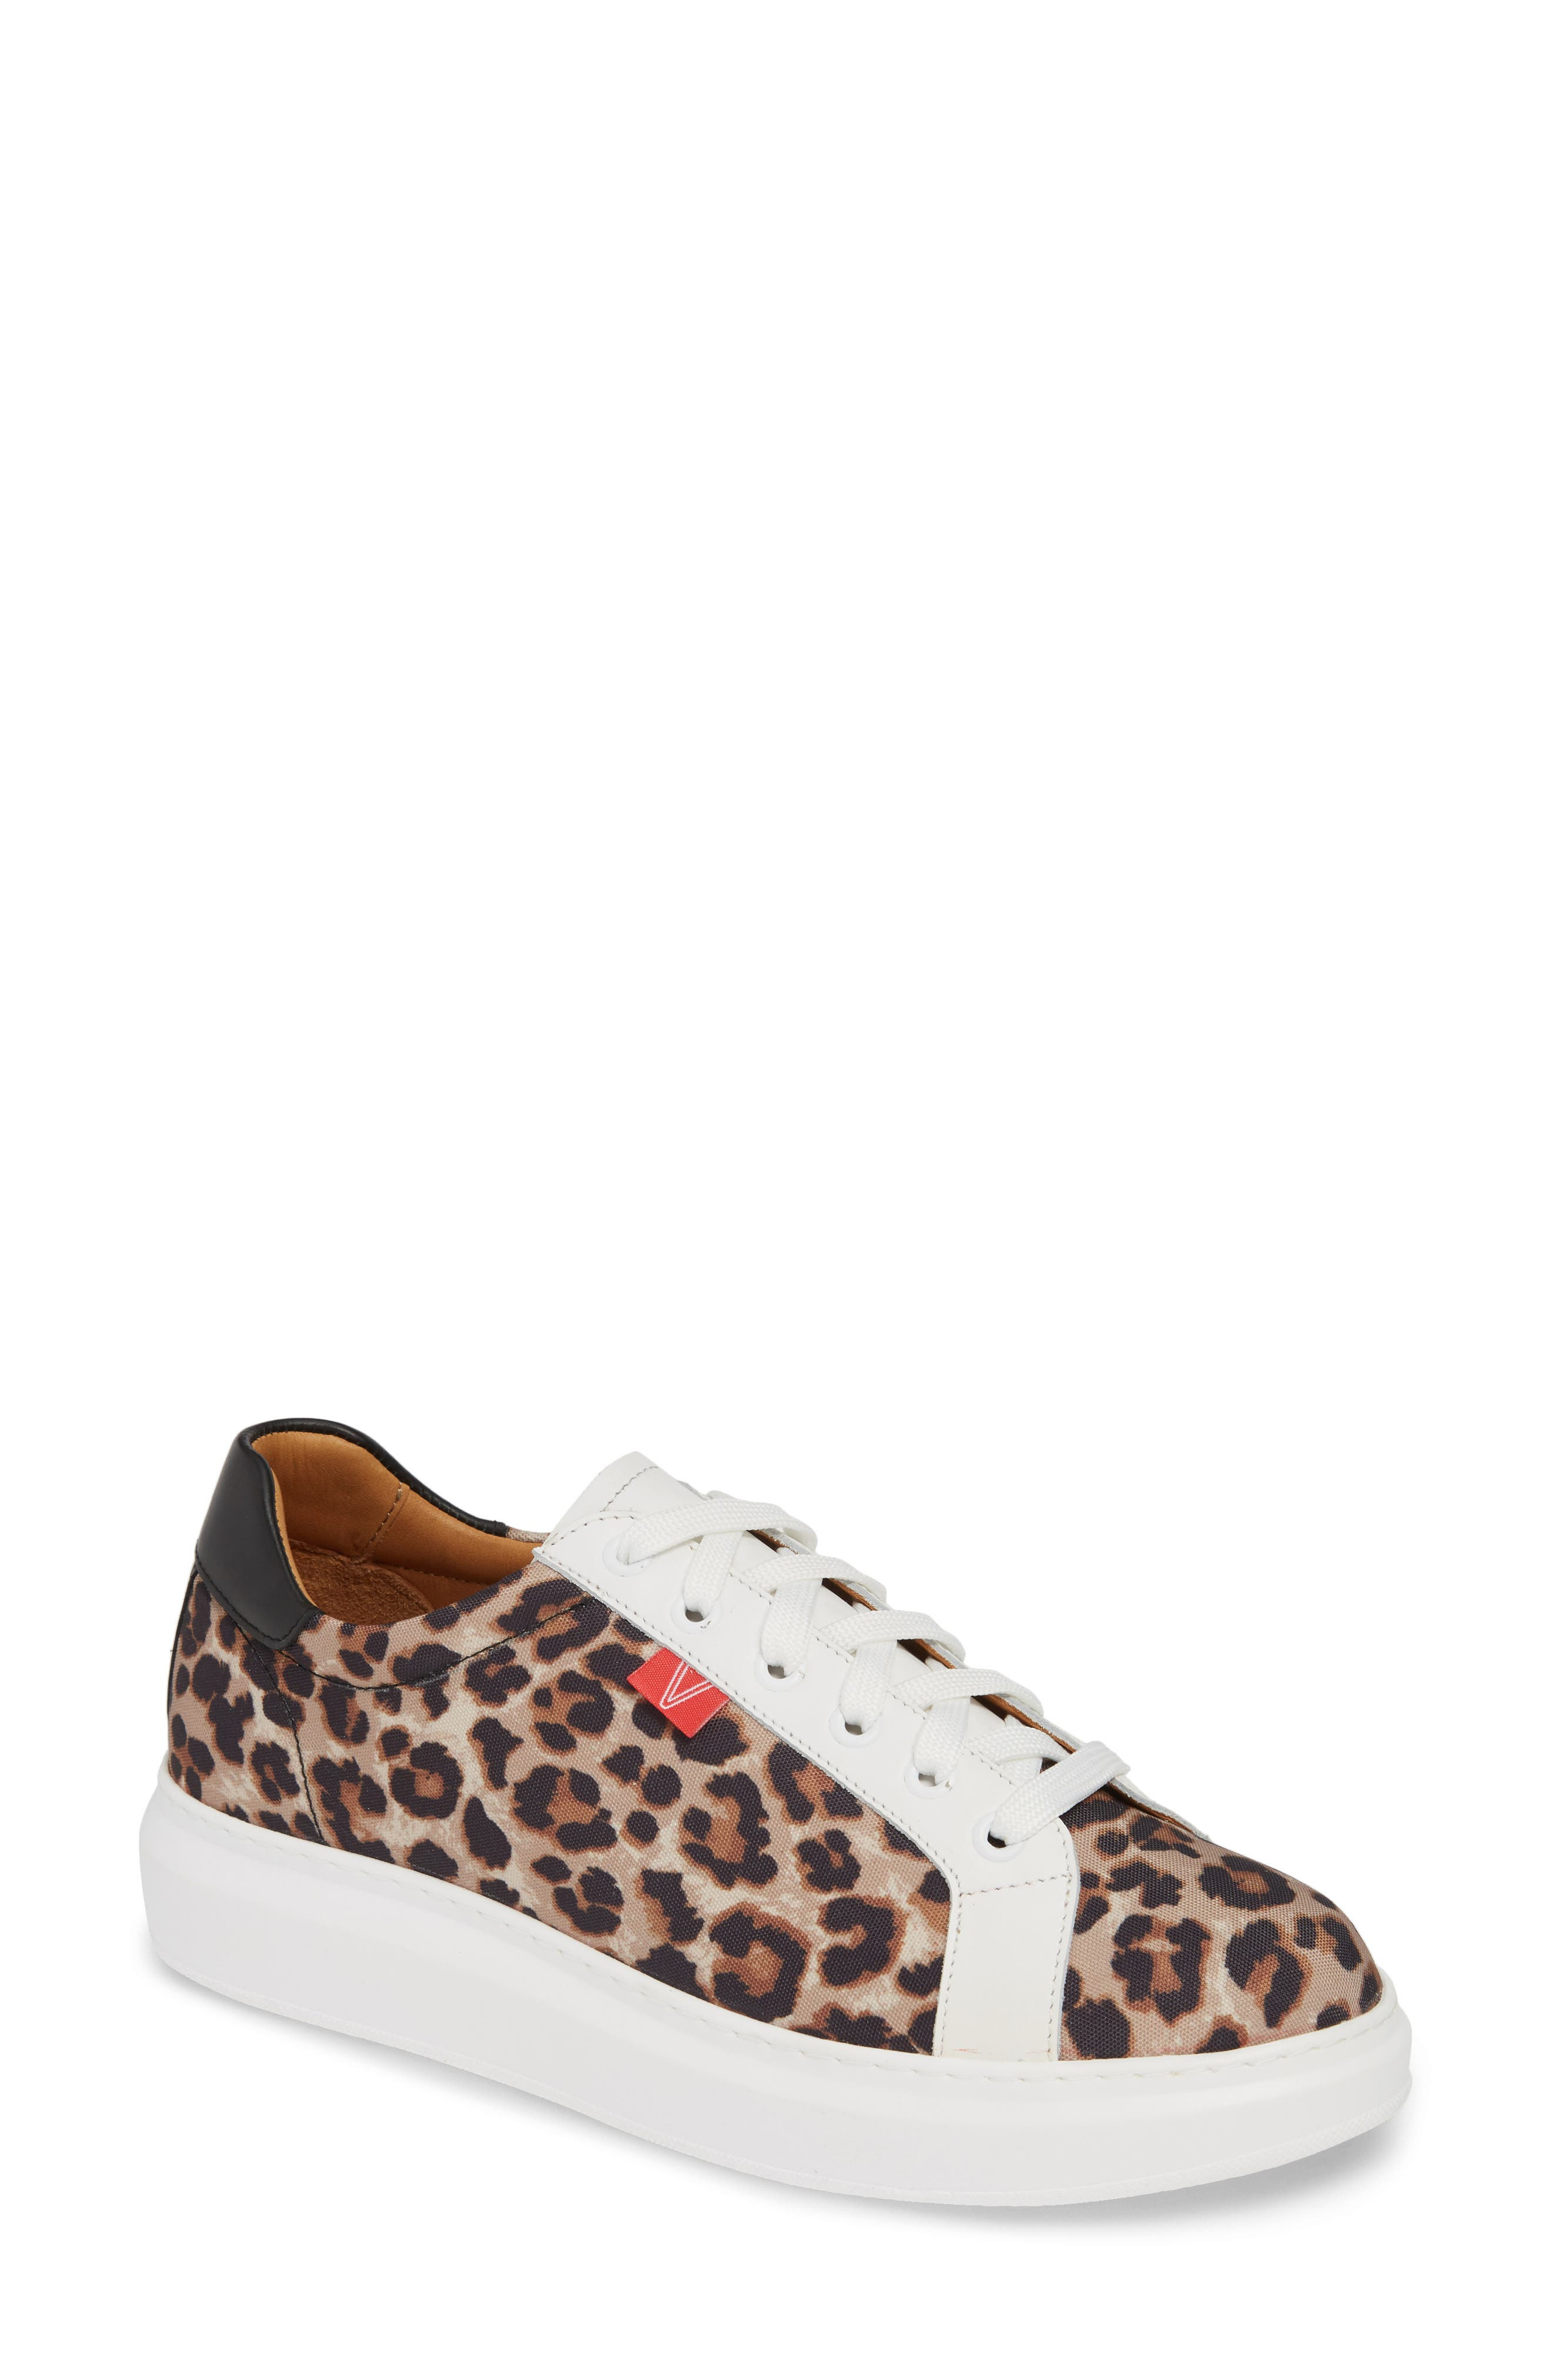 VERONICA BEARD Daelyn Leopard Print Sneaker, Main, color, LEOPARD